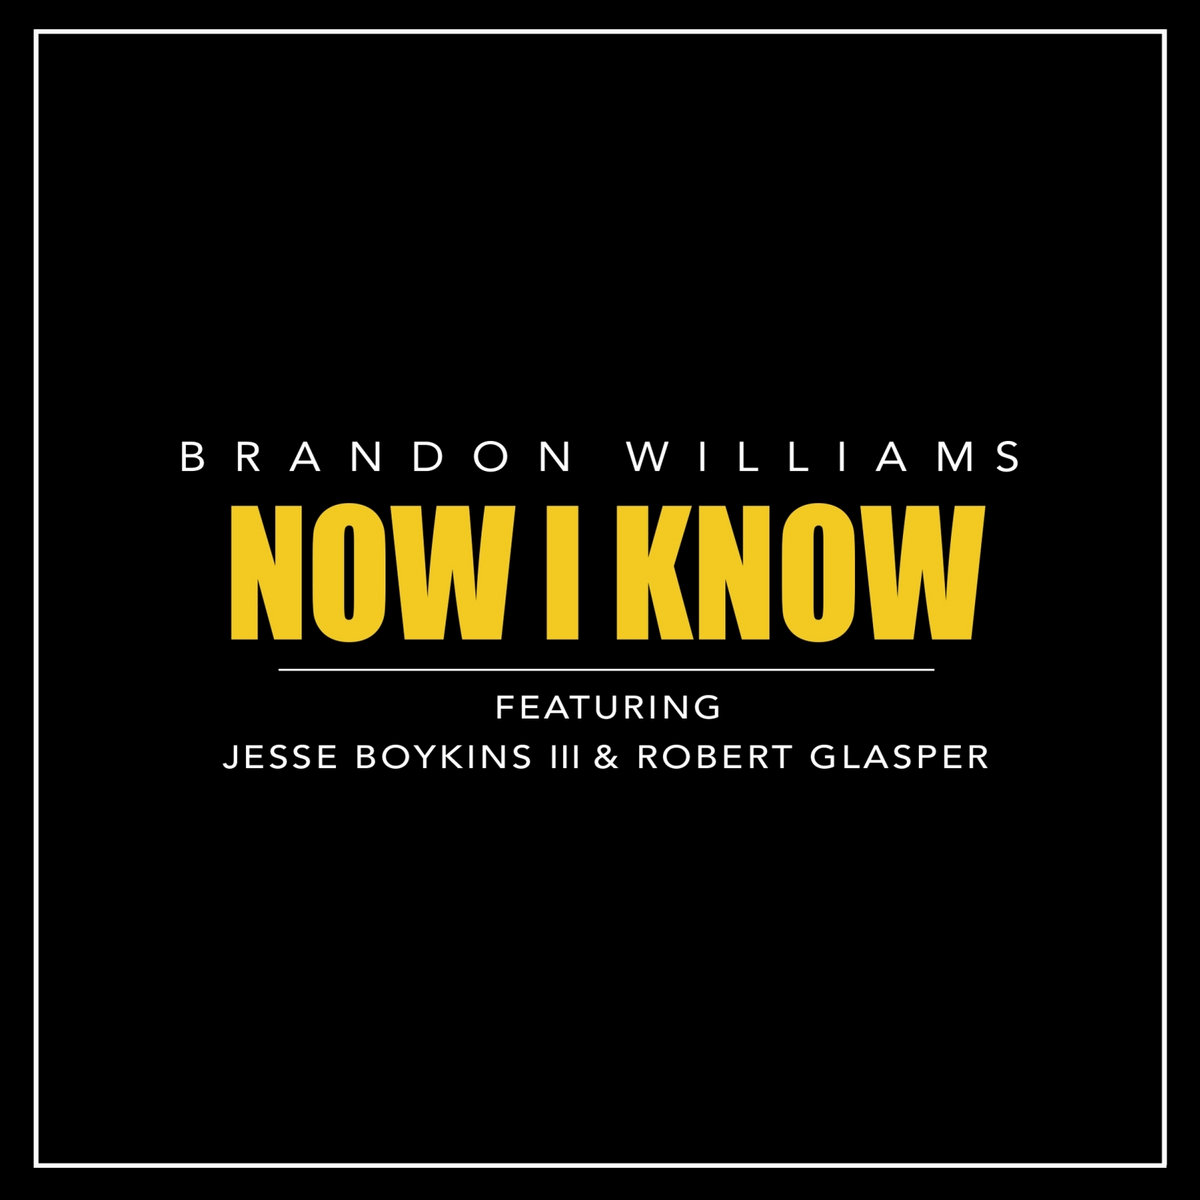 Now I Know feat. Jesse Boykins III & Robert Glasper by Brandon Williams